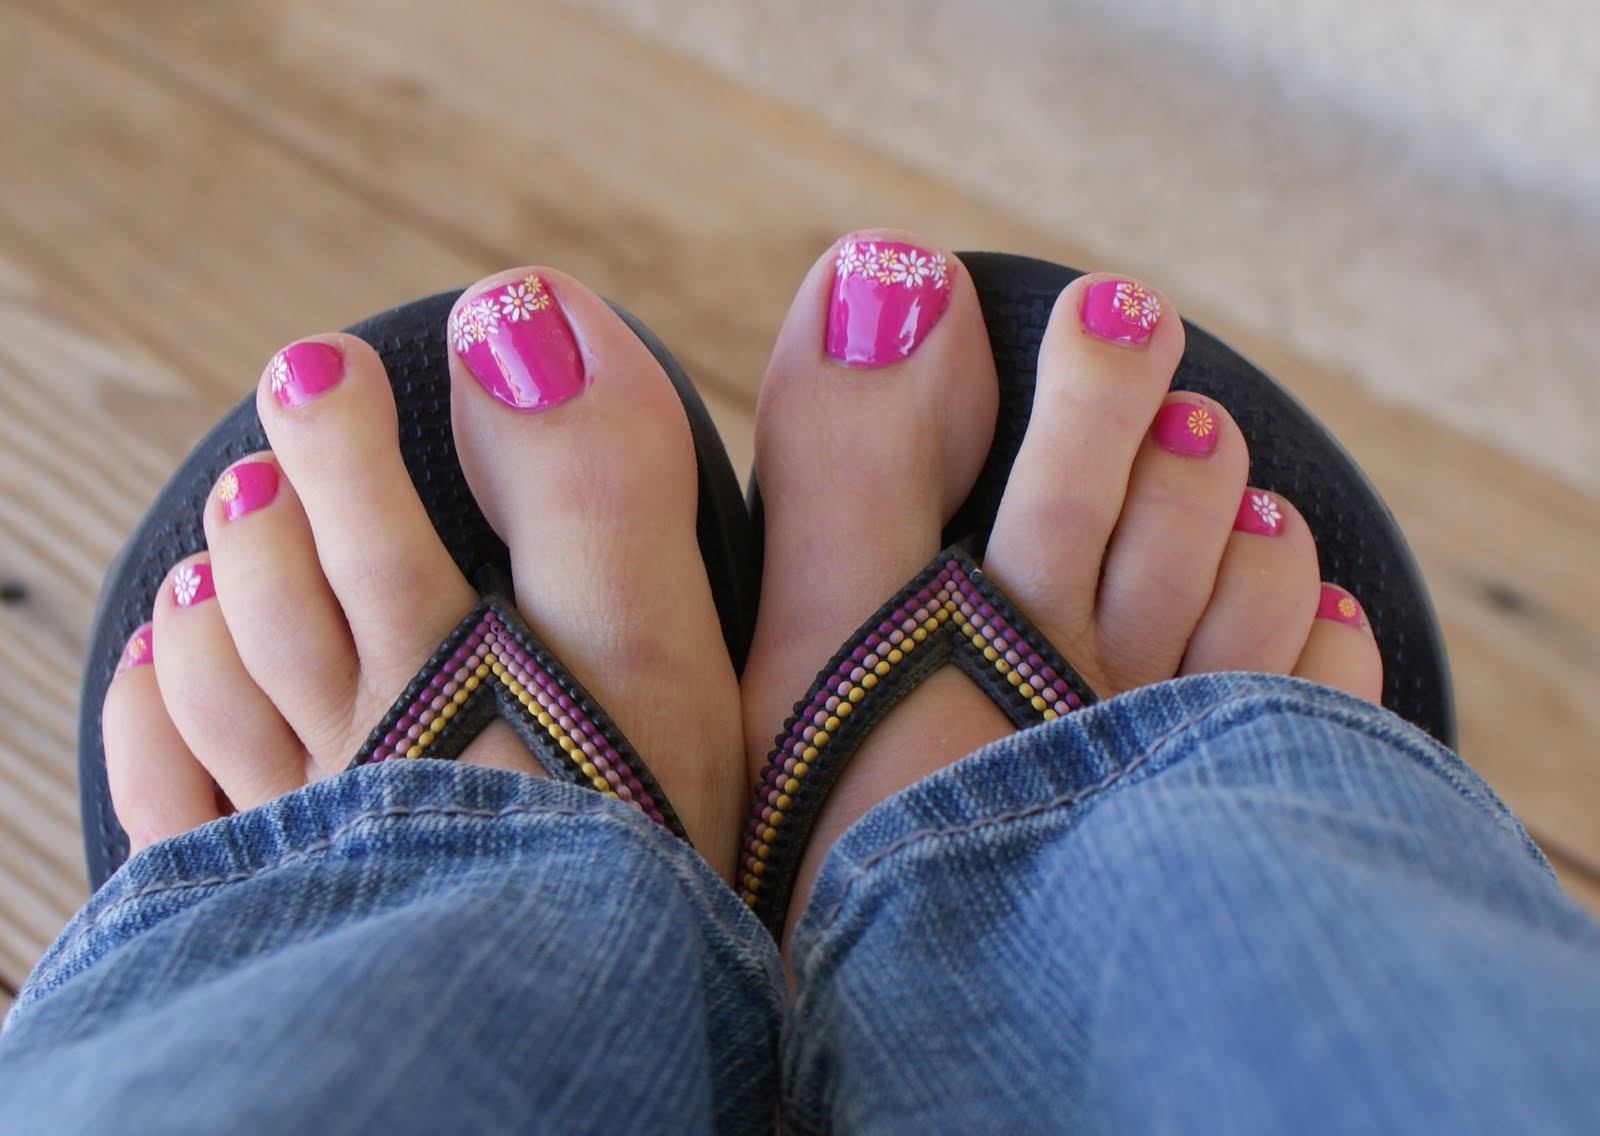 Feet And Toes 55